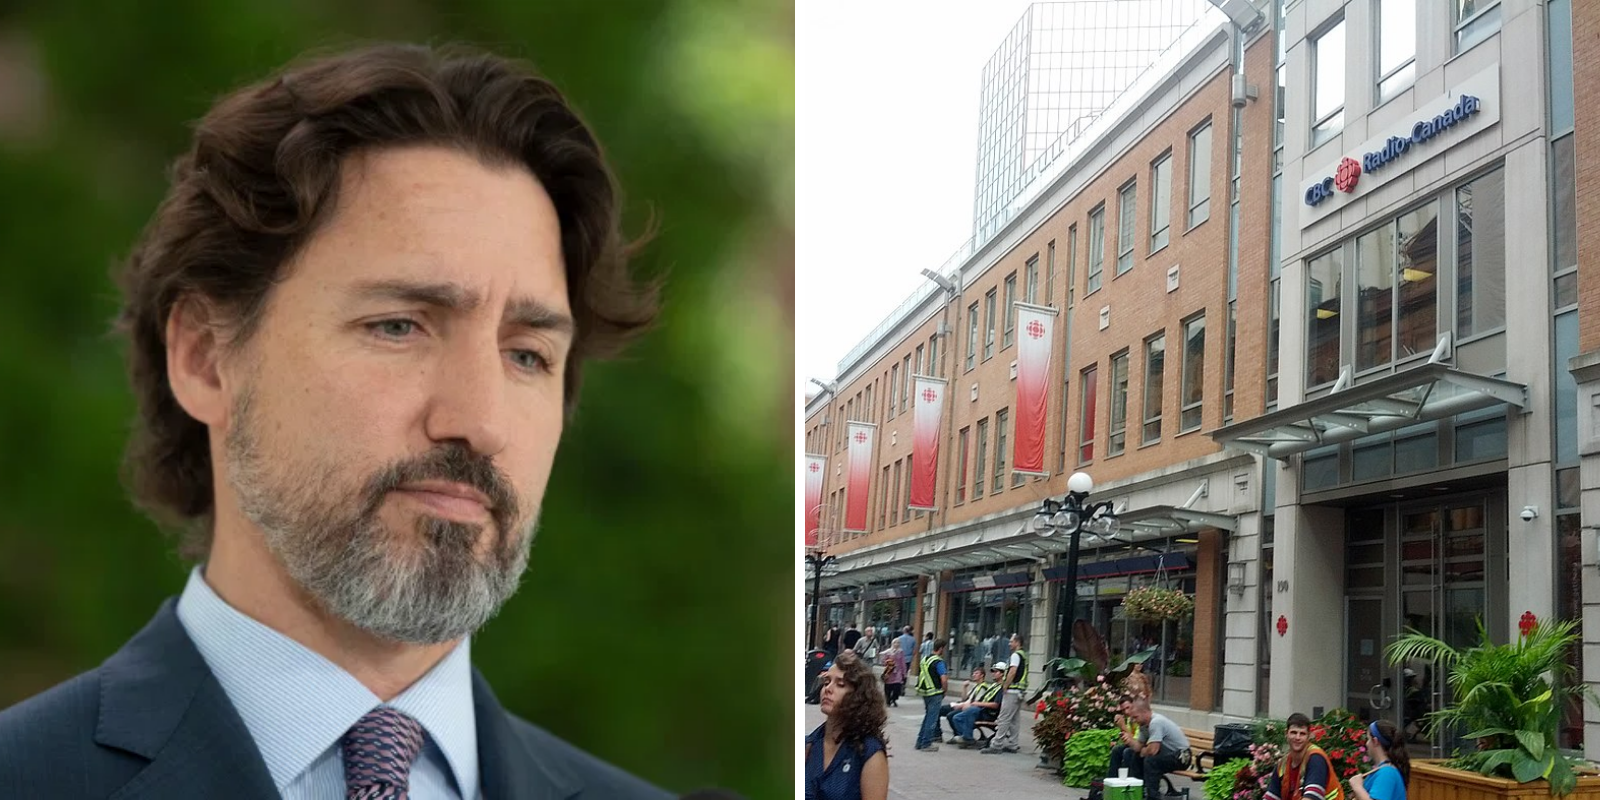 Trudeau Liberals give failing CBC-TV bailout in midst of pandemic